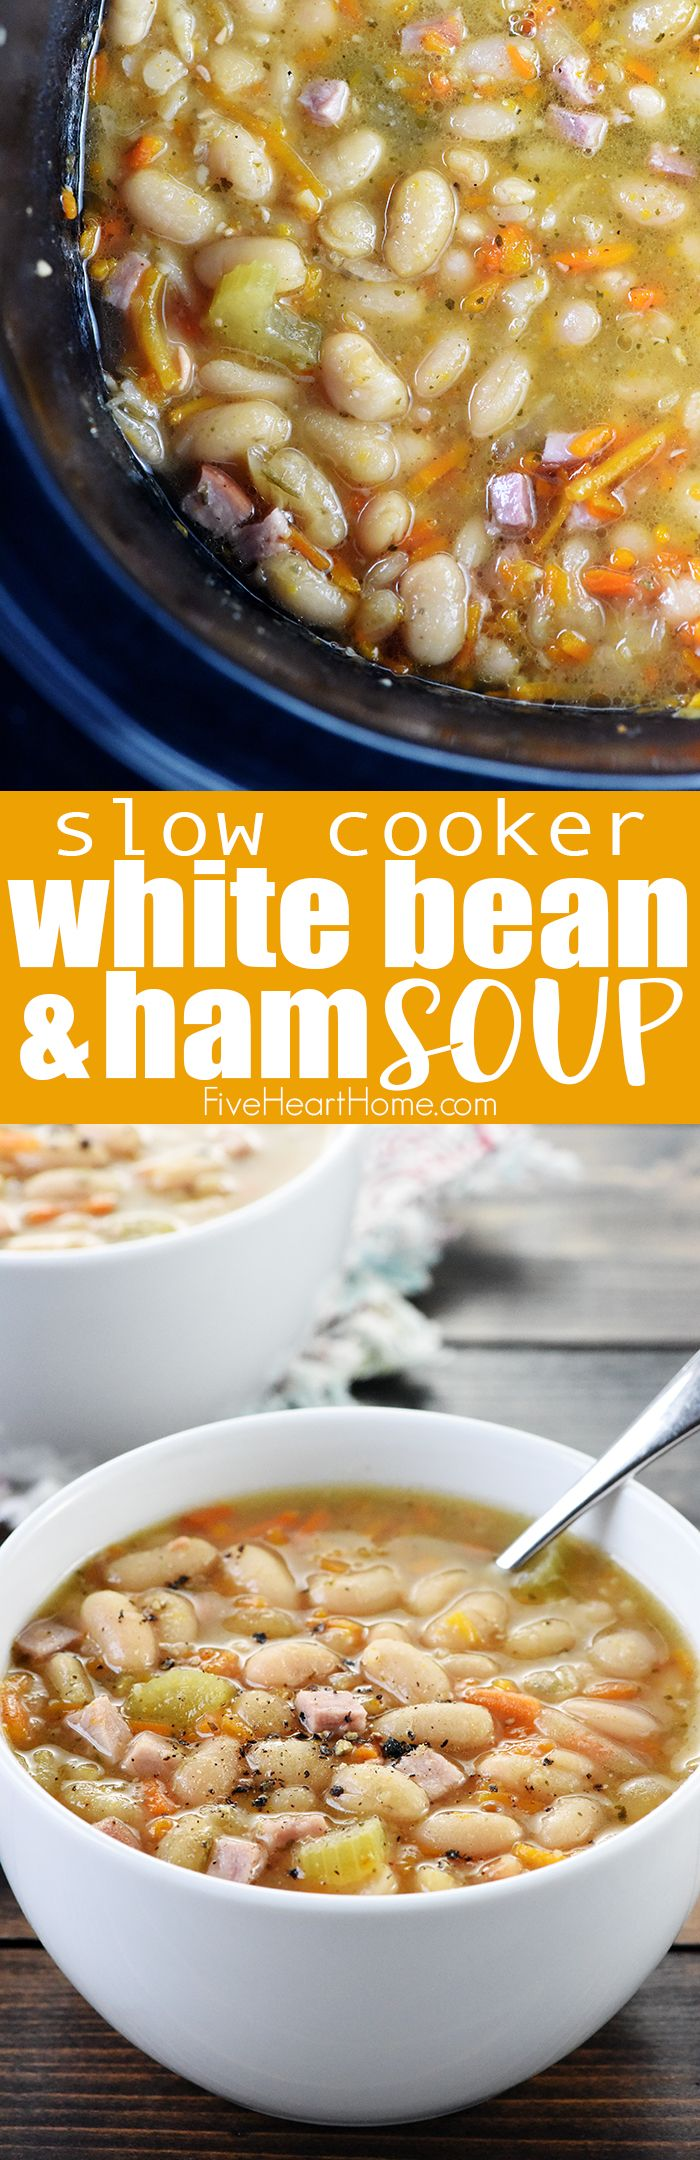 Slow Cooker White Bean & Ham Soup is a hearty, wholesome, comforting crock pot recipe that's perfect for using up leftover holiday ham! So are y'all ready for the big day? I hit the grocery store ear